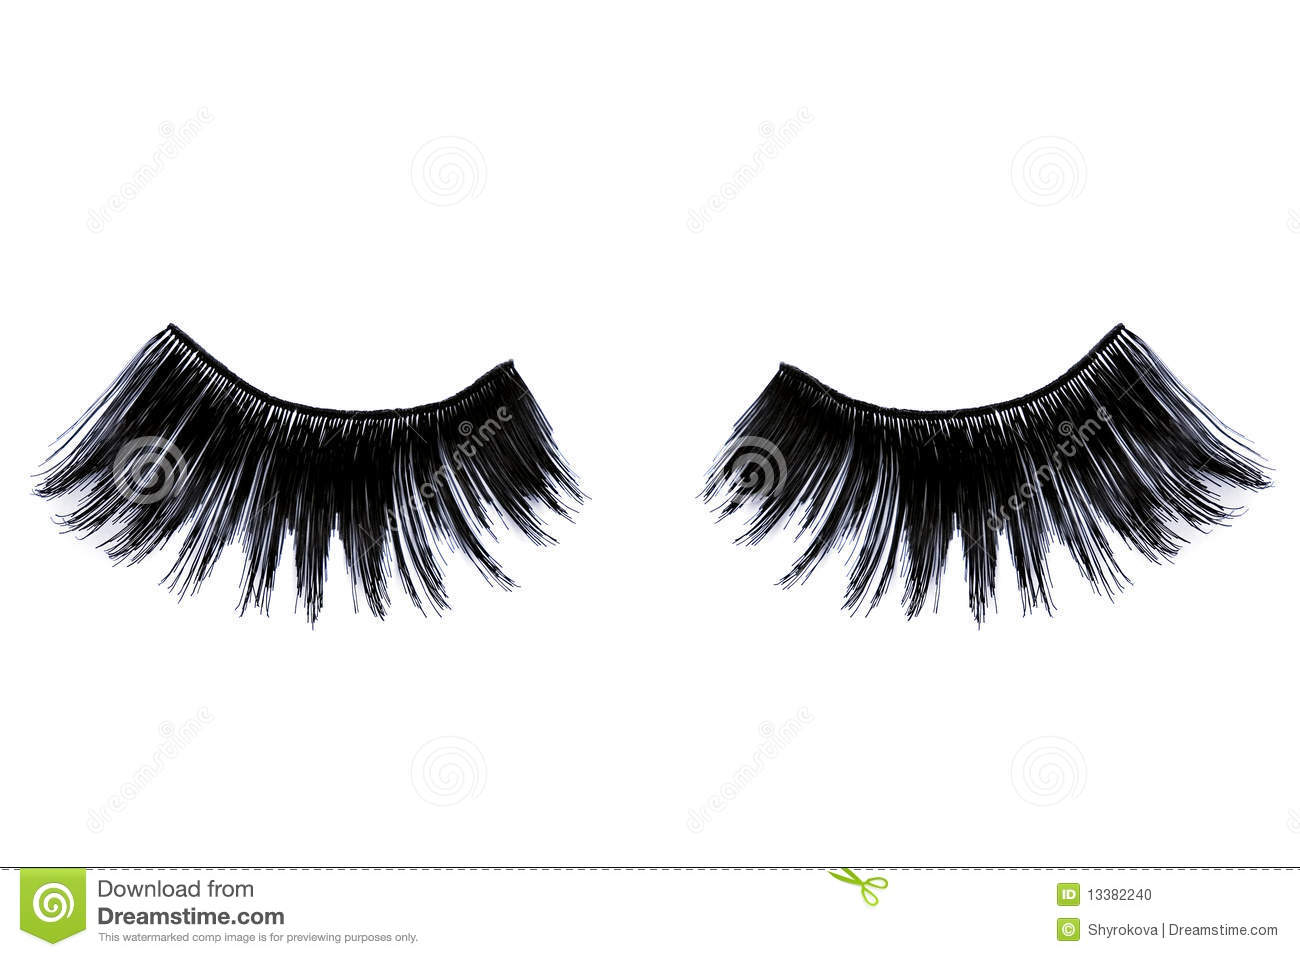 human eye clip art 11905 Blue Human Eye And Eyelashes Clipart.